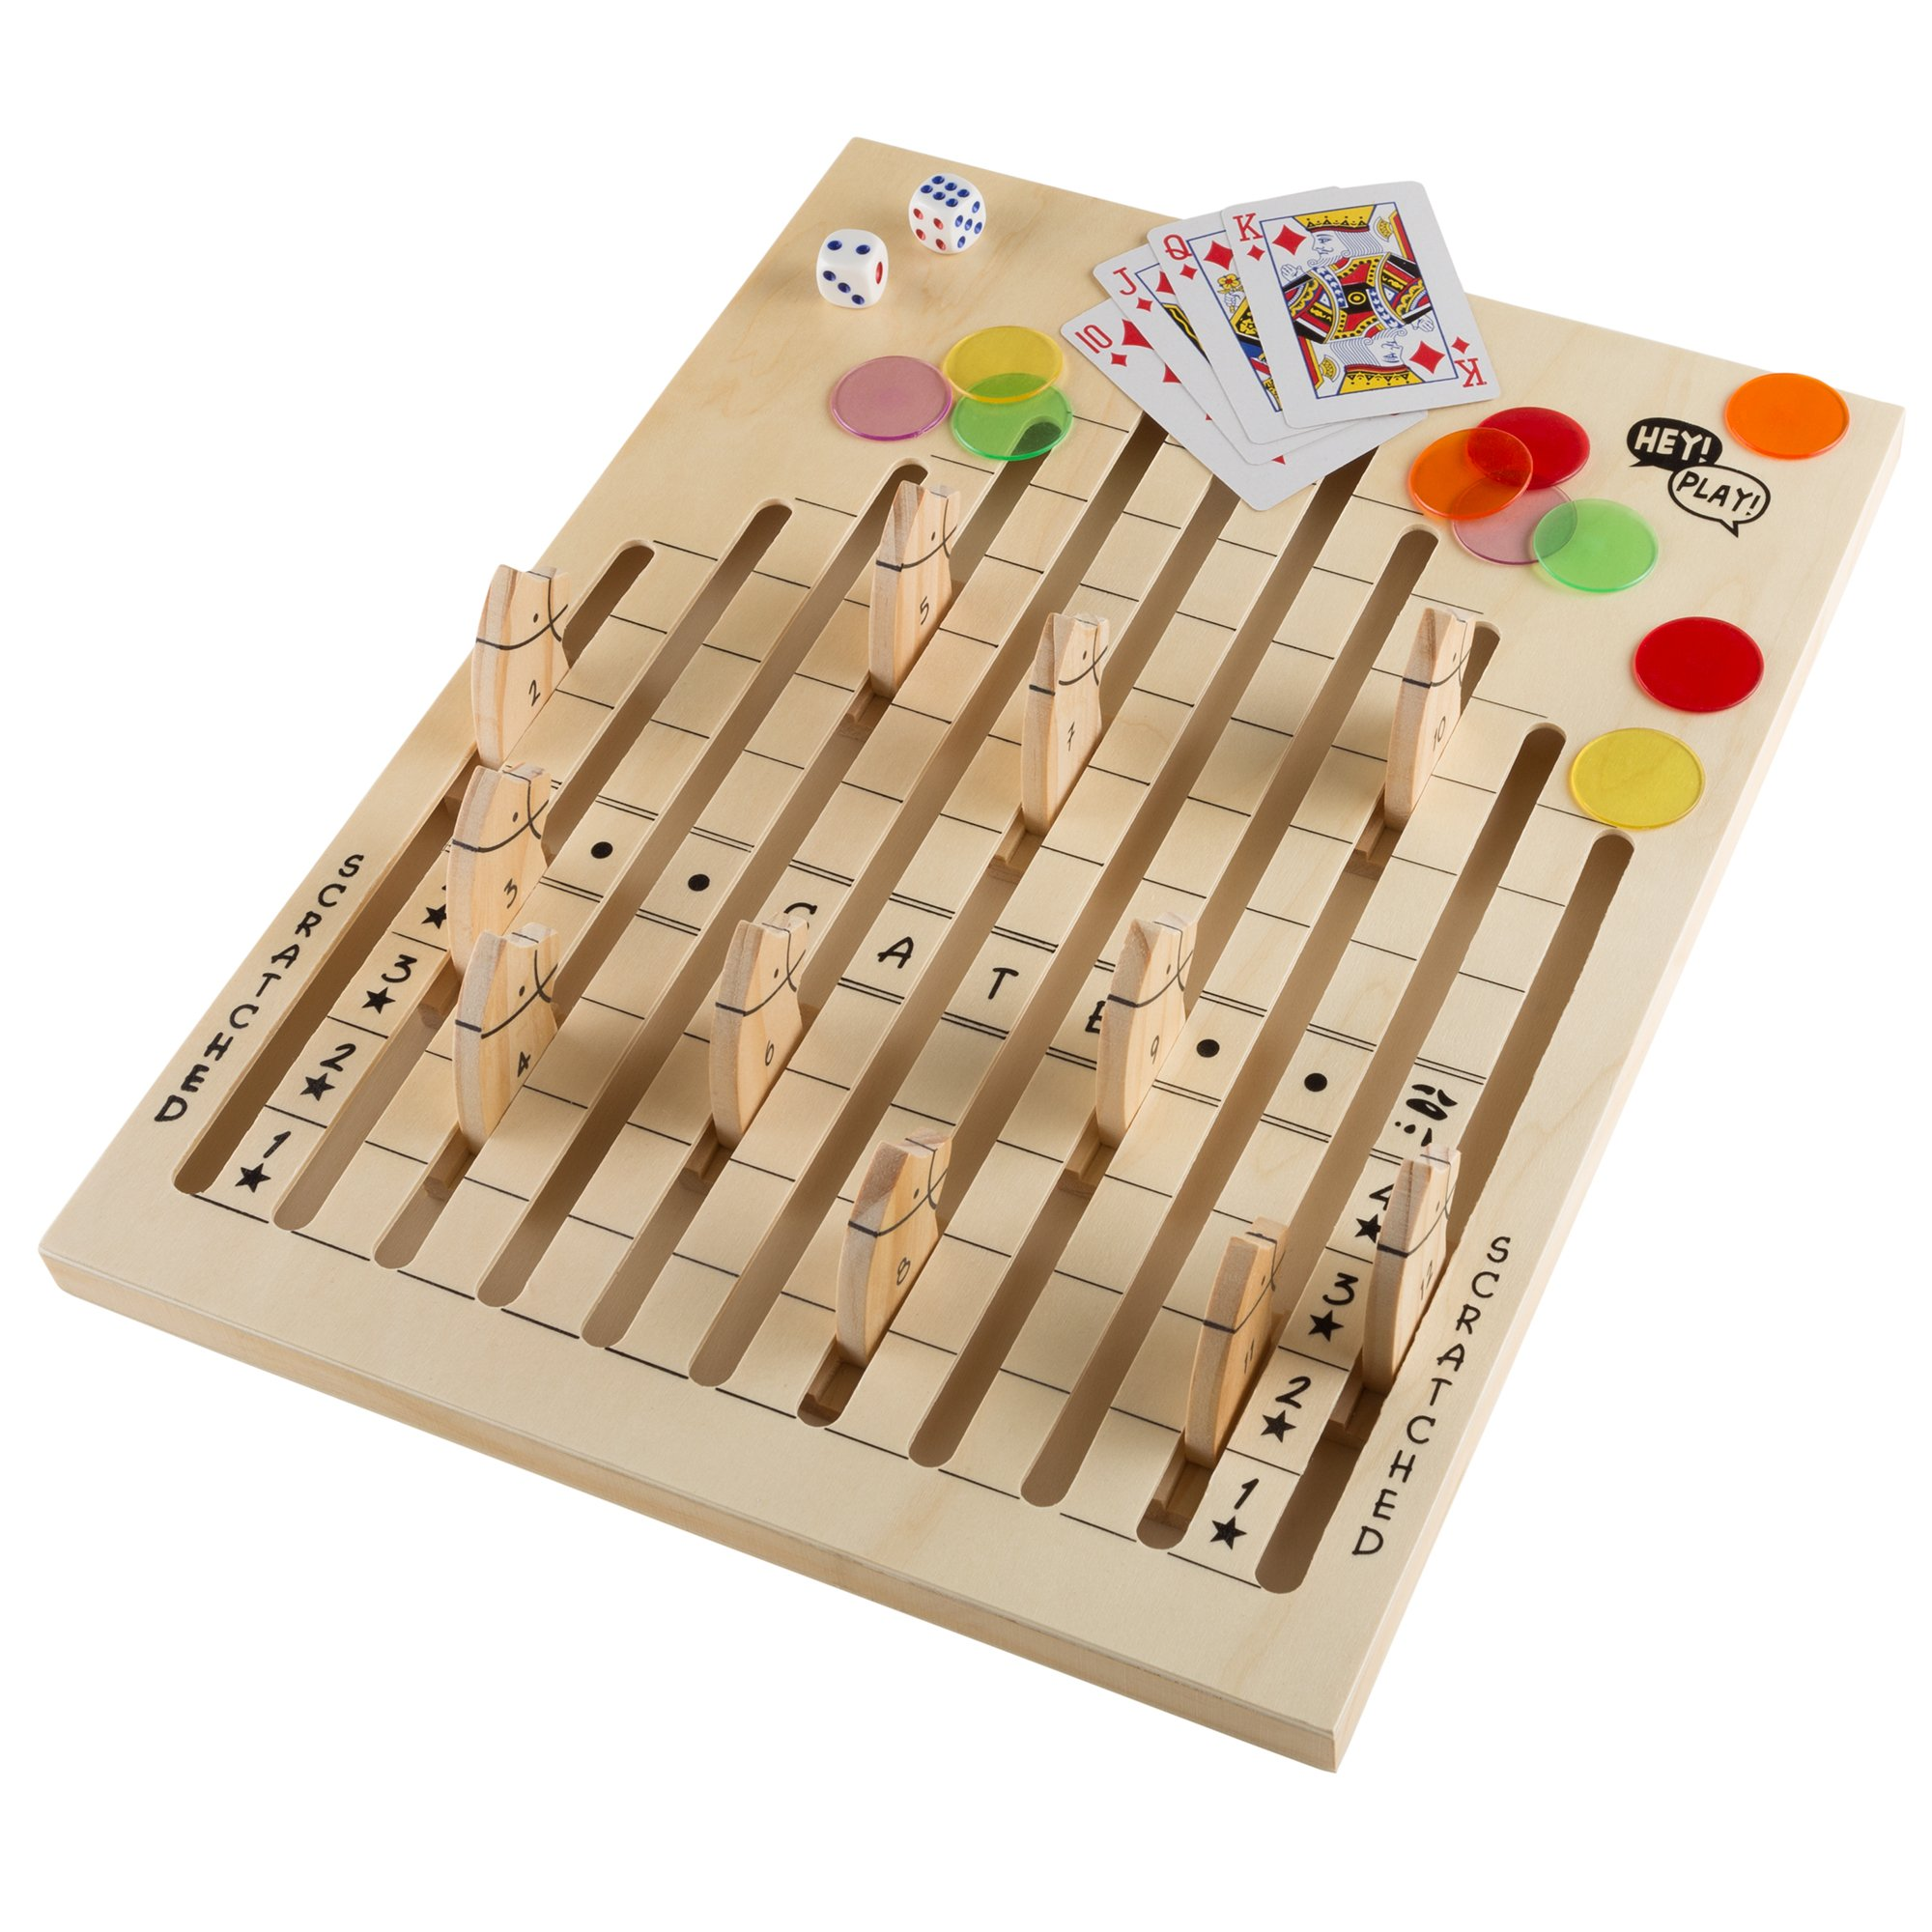 Wooden Horse Race Game Set - Includes Dice, Cards and Chips!